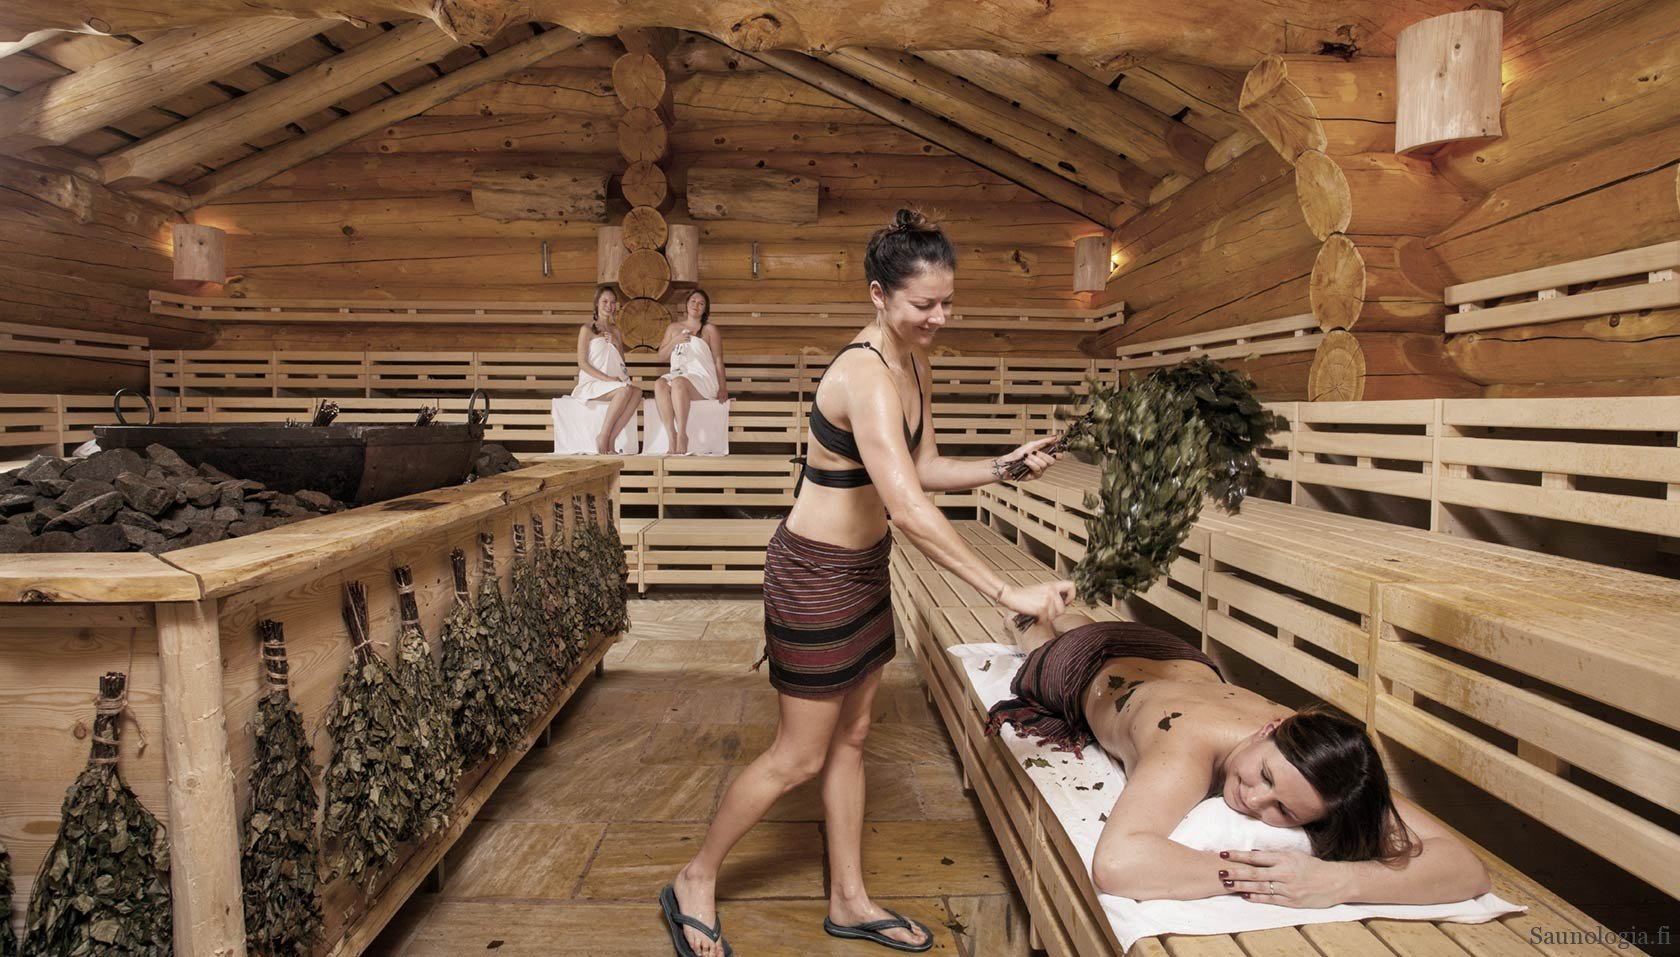 The world's largest sauna center at Therme Erding